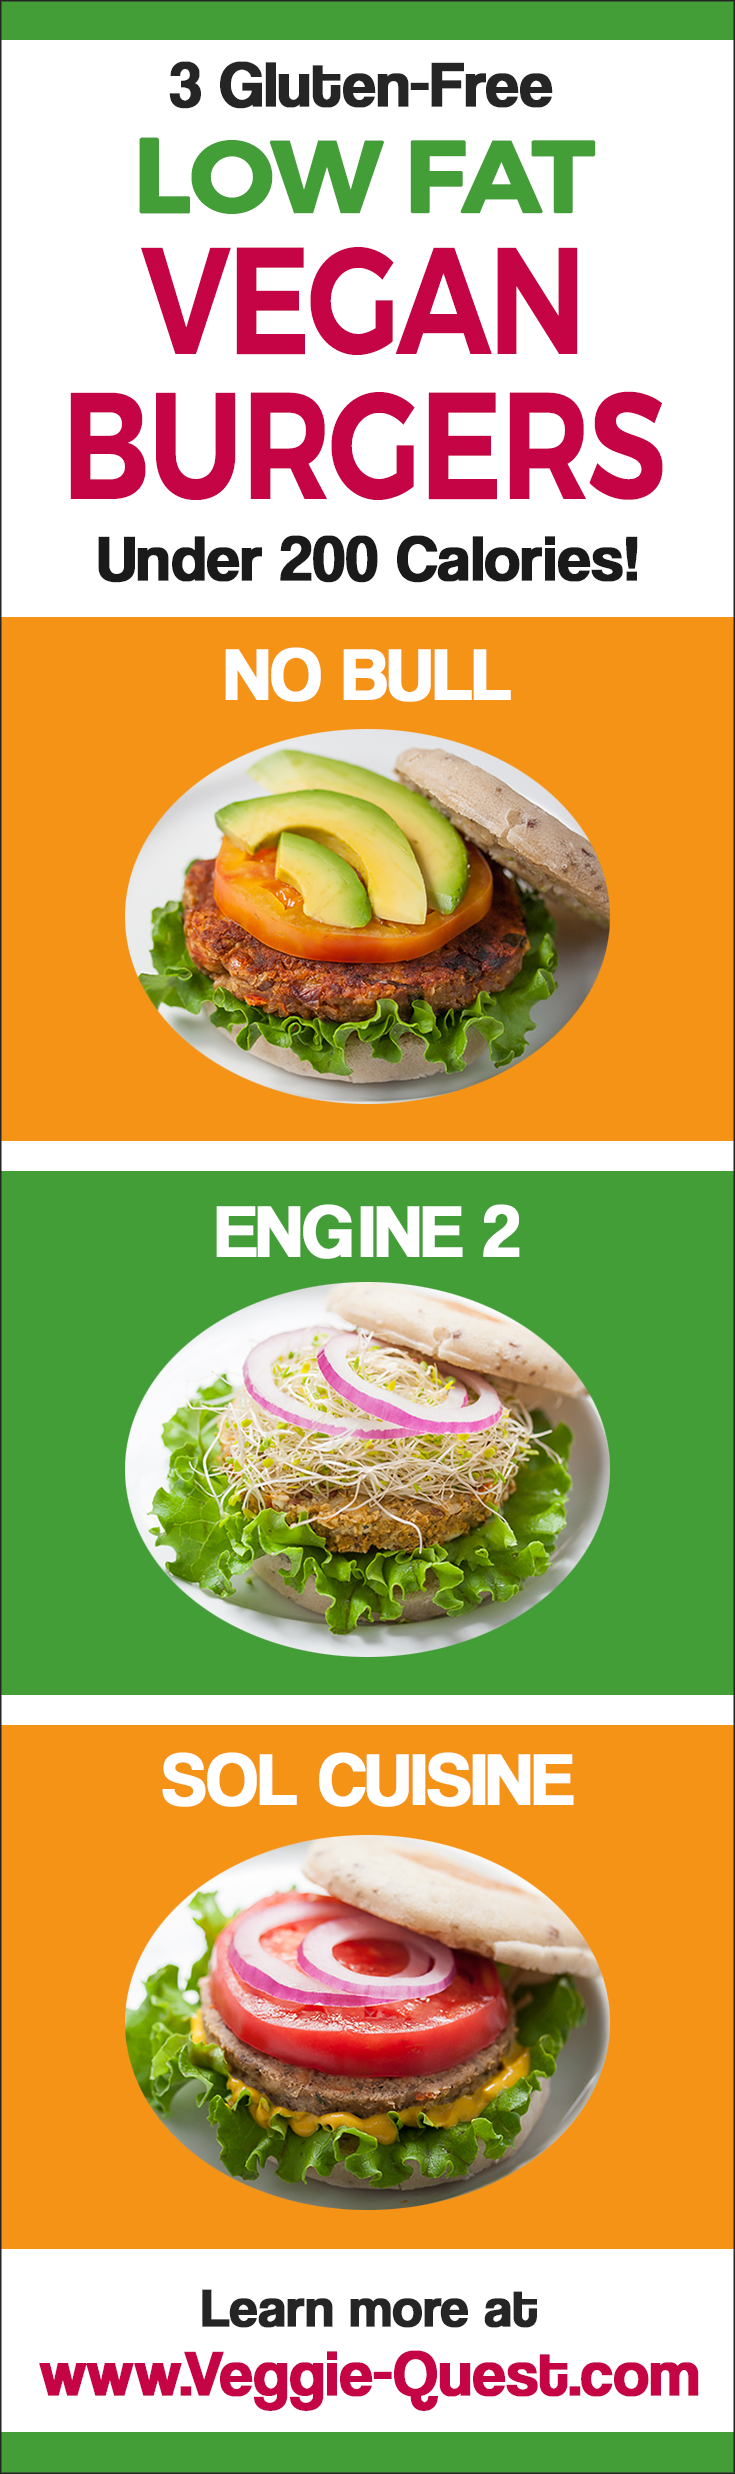 3 Low-Fat, Gluten-Free, Vegan Burgers You Can Buy Under 200 Calories Each! McDougall friendly with less than 3 grams of fat per burger.